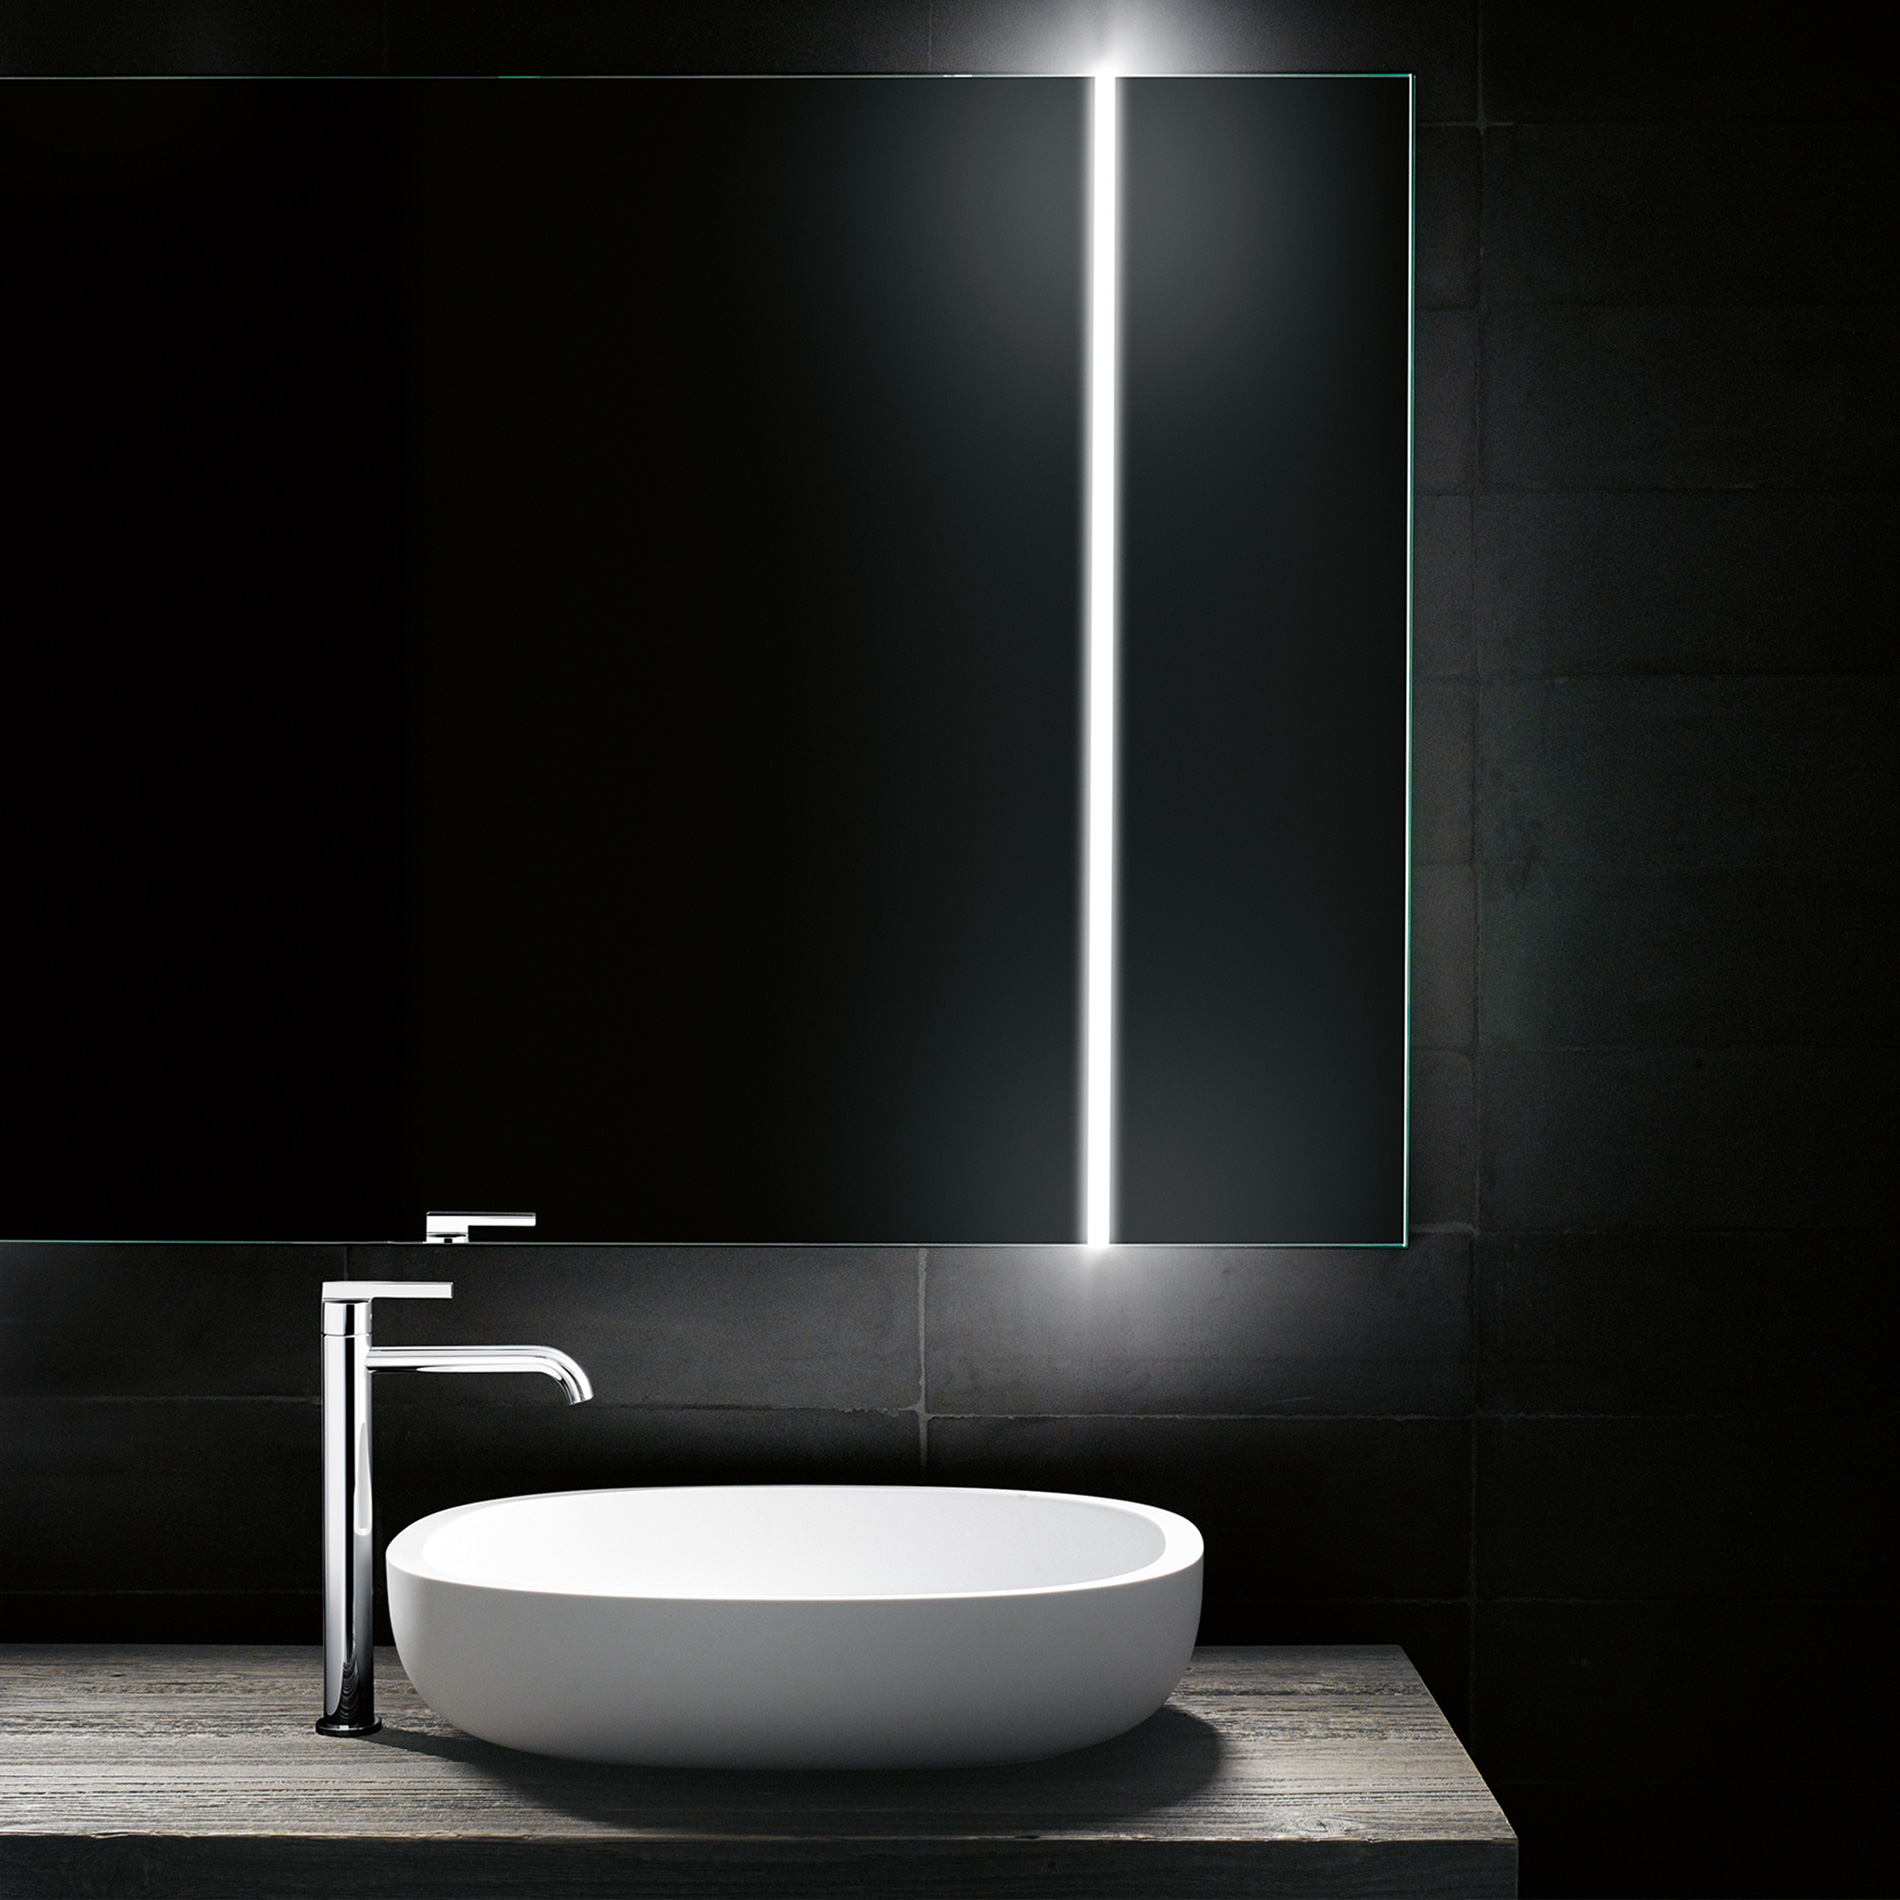 Nicos-International-home-products-Boffi-washbasins-1